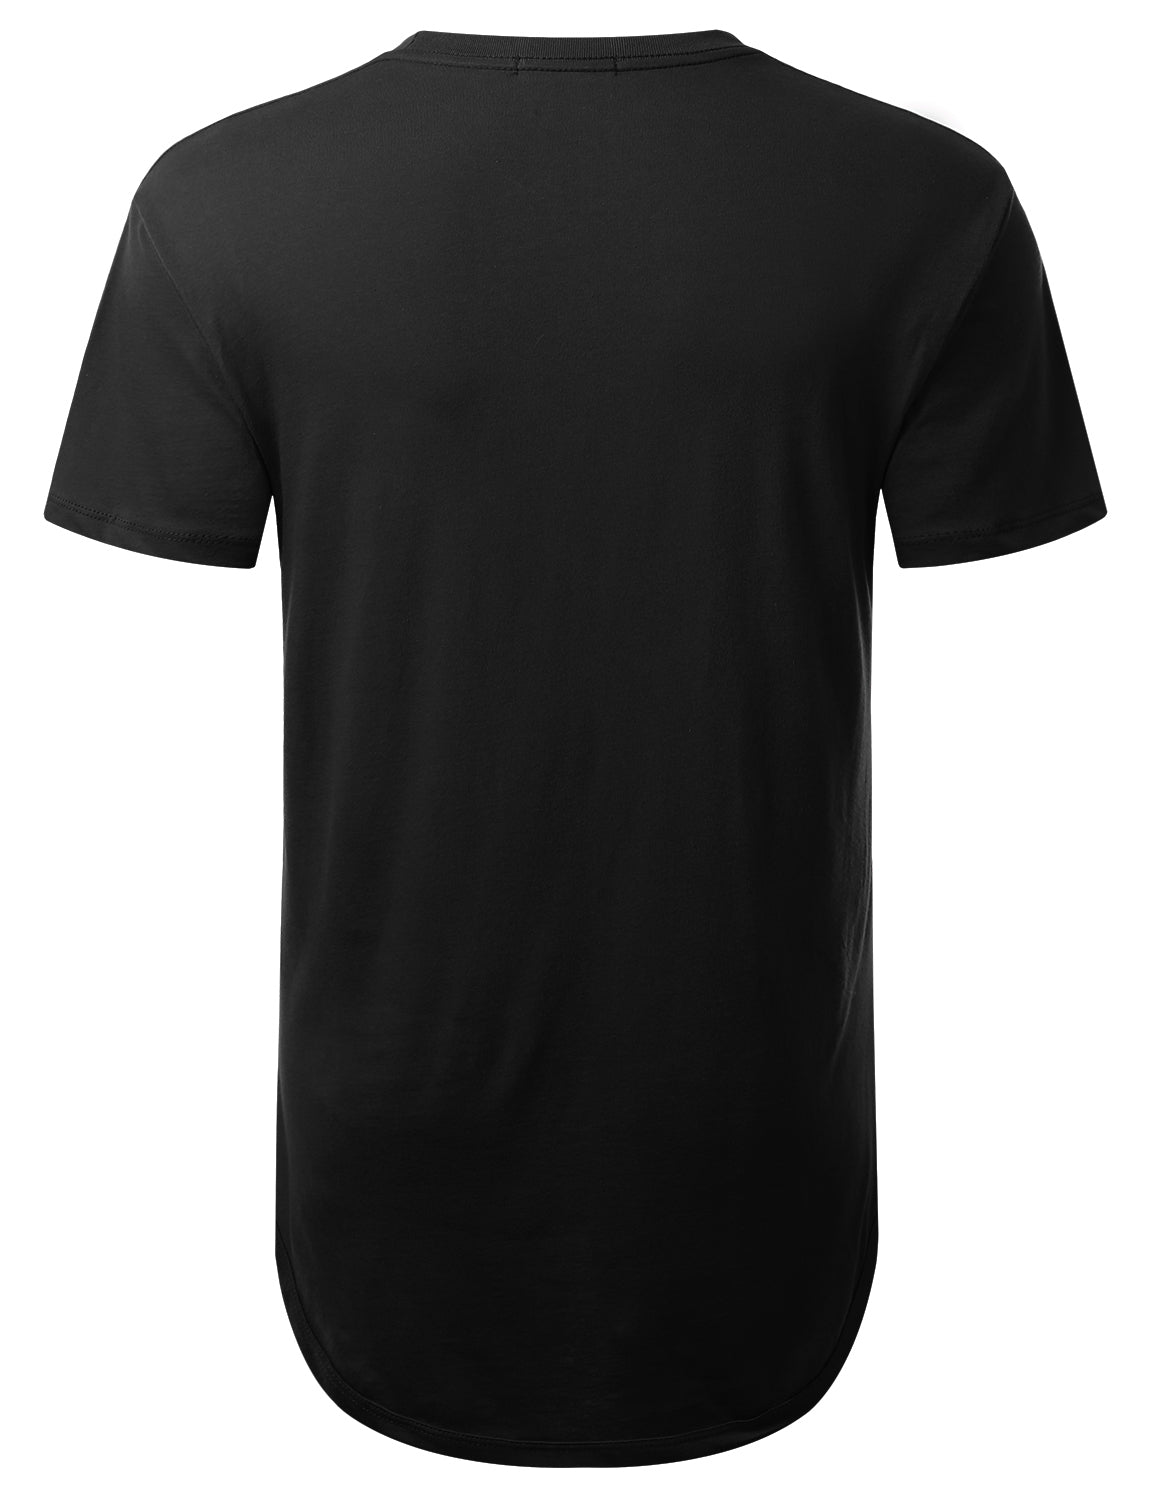 BLACK City View Print Longline T-shirt - URBANCREWS